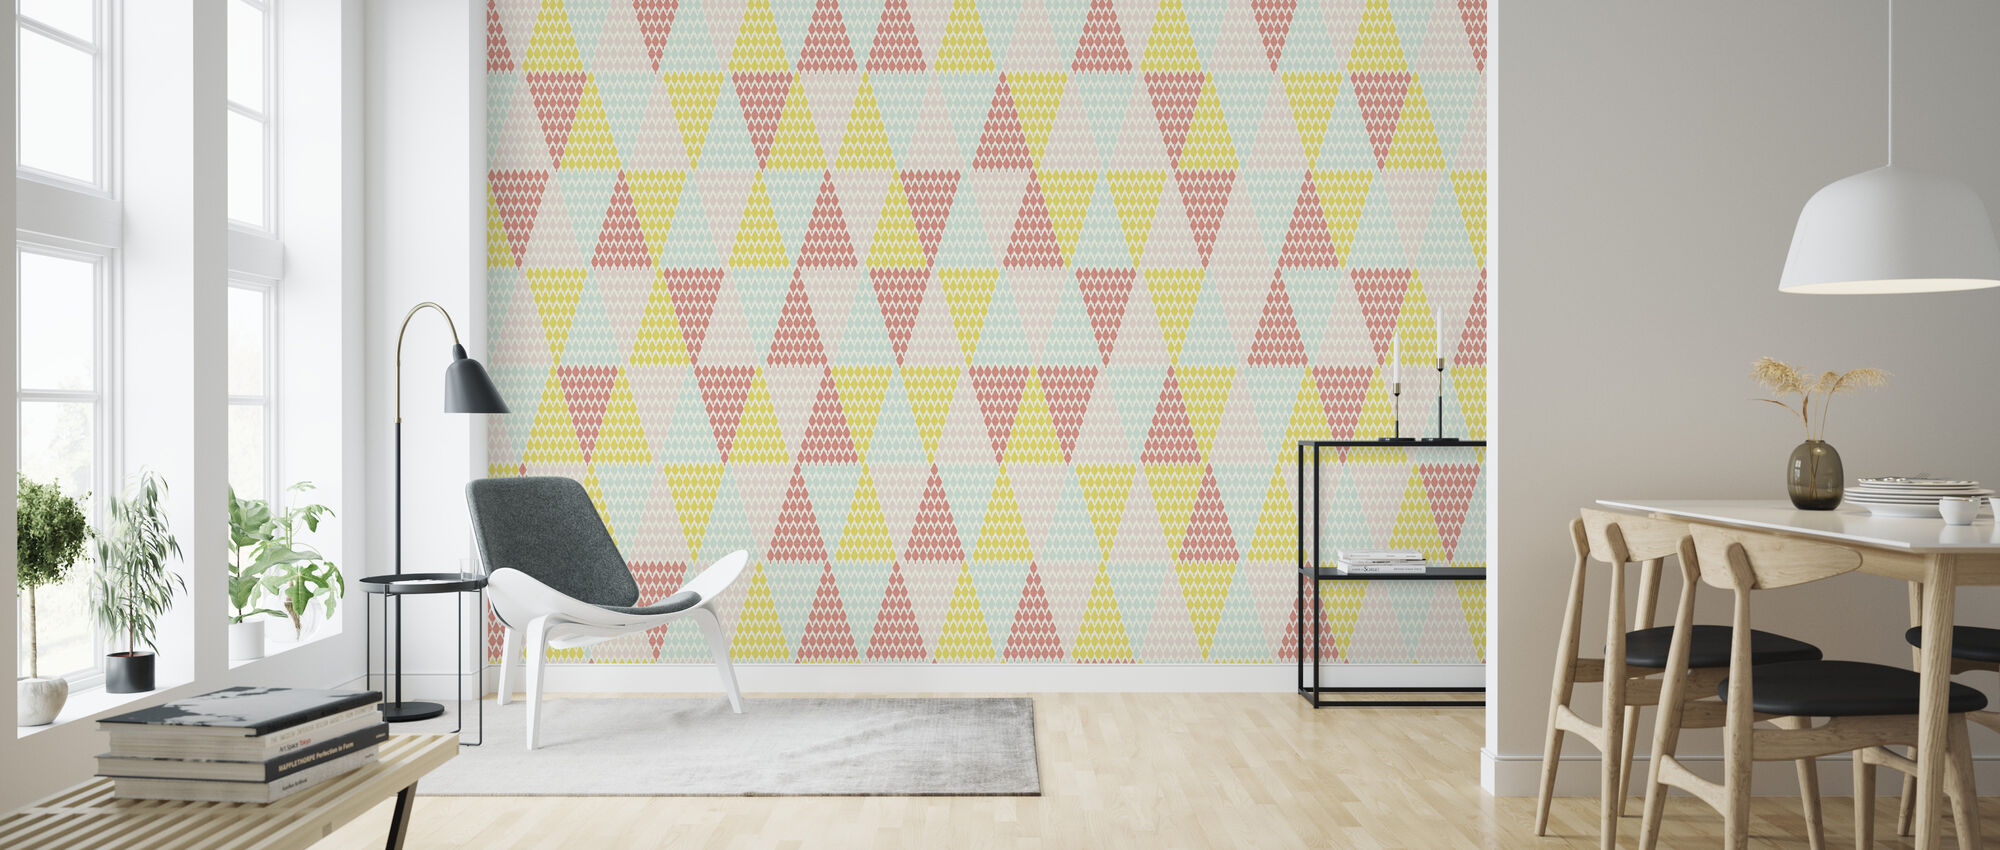 Studio Rita | Maria Bergström - Tiny Tree - Triangle - Wallpaper - Living Room